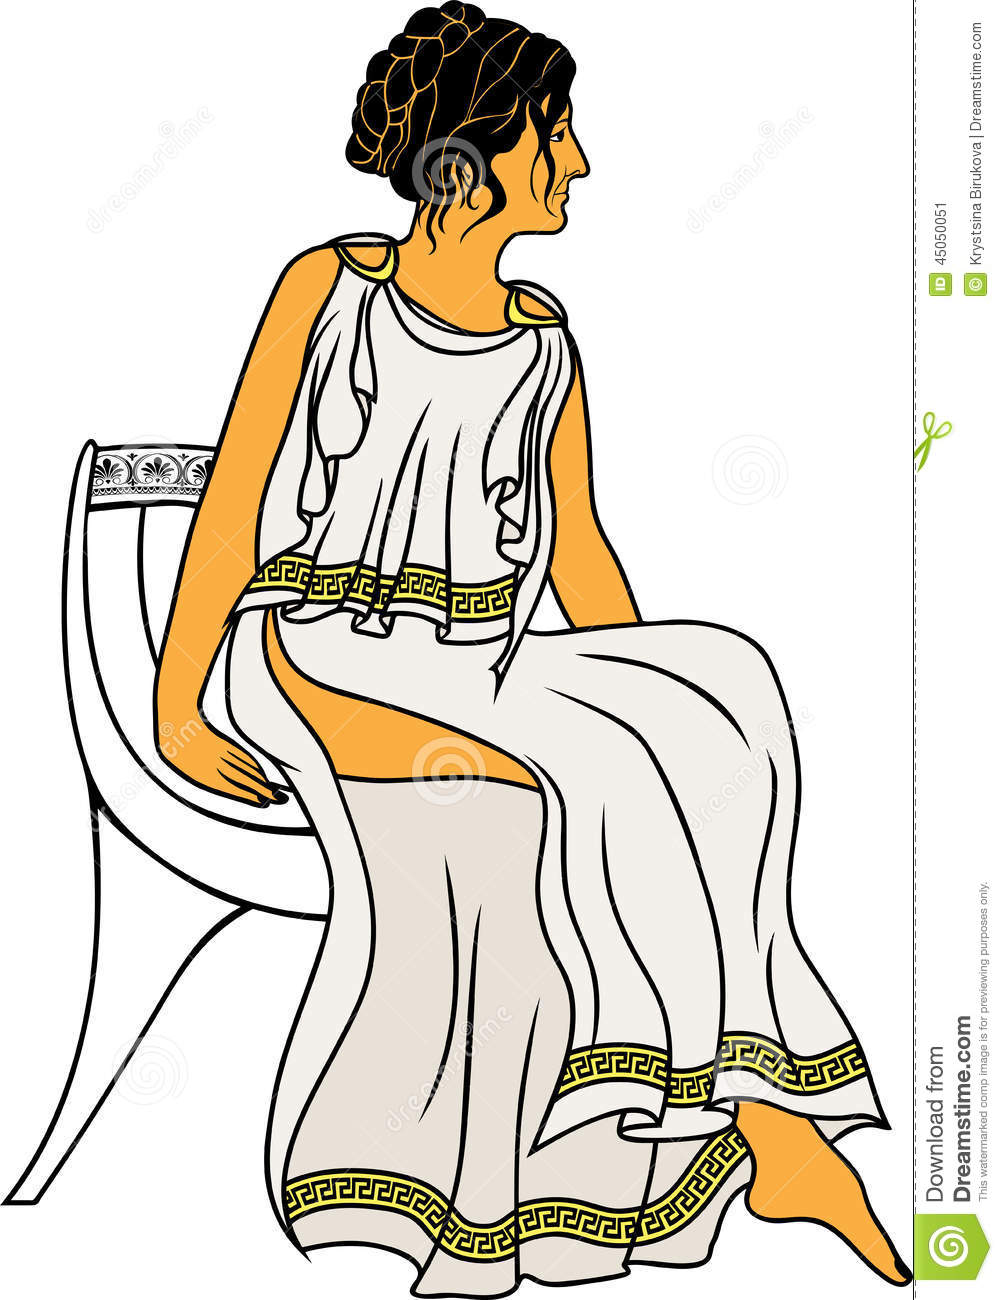 5 Most Romantic Rooftop Bars In Rome besides Stock Illustration Ancient Greek Woman Sitting Chair Colored Variant Image45050051 likewise Forum Romanum additionally Nolli Map Of Rome further File Aphrodisias tetrapylon 2009 04 27. on ruins of rome